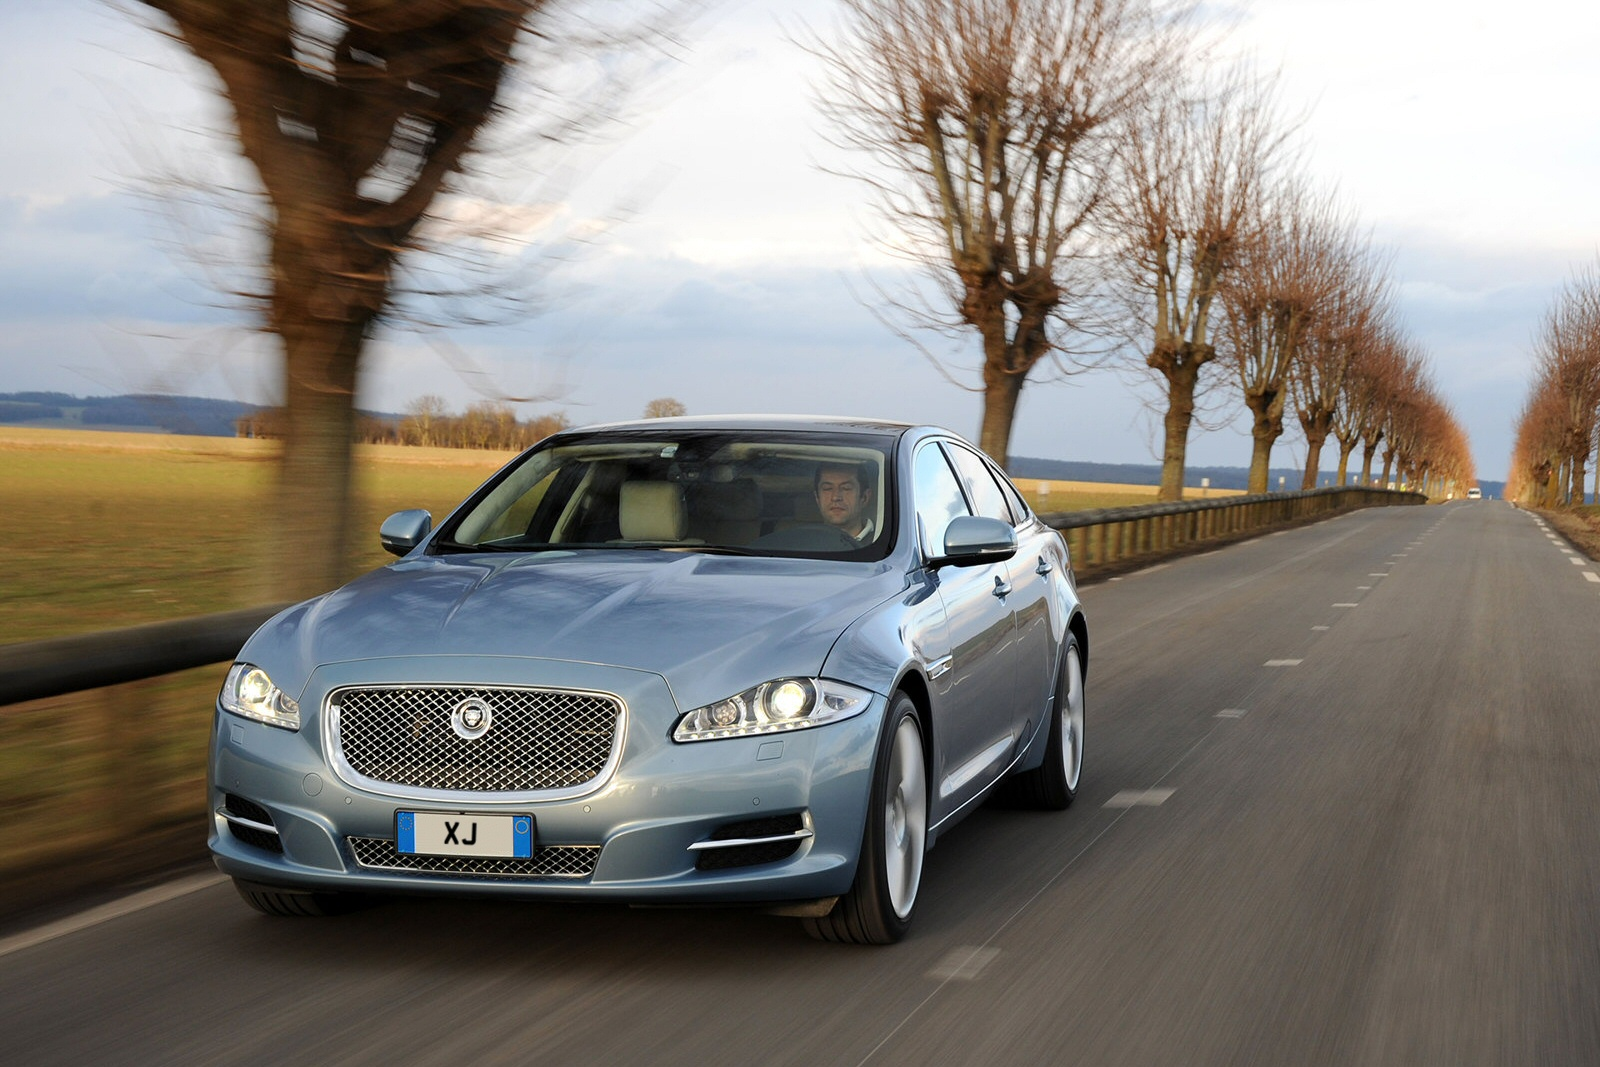 Tesla Bonds Best Of Jaguar Xj Diesel Saloon 3 0d V6 Luxury 4dr Auto [lwb]